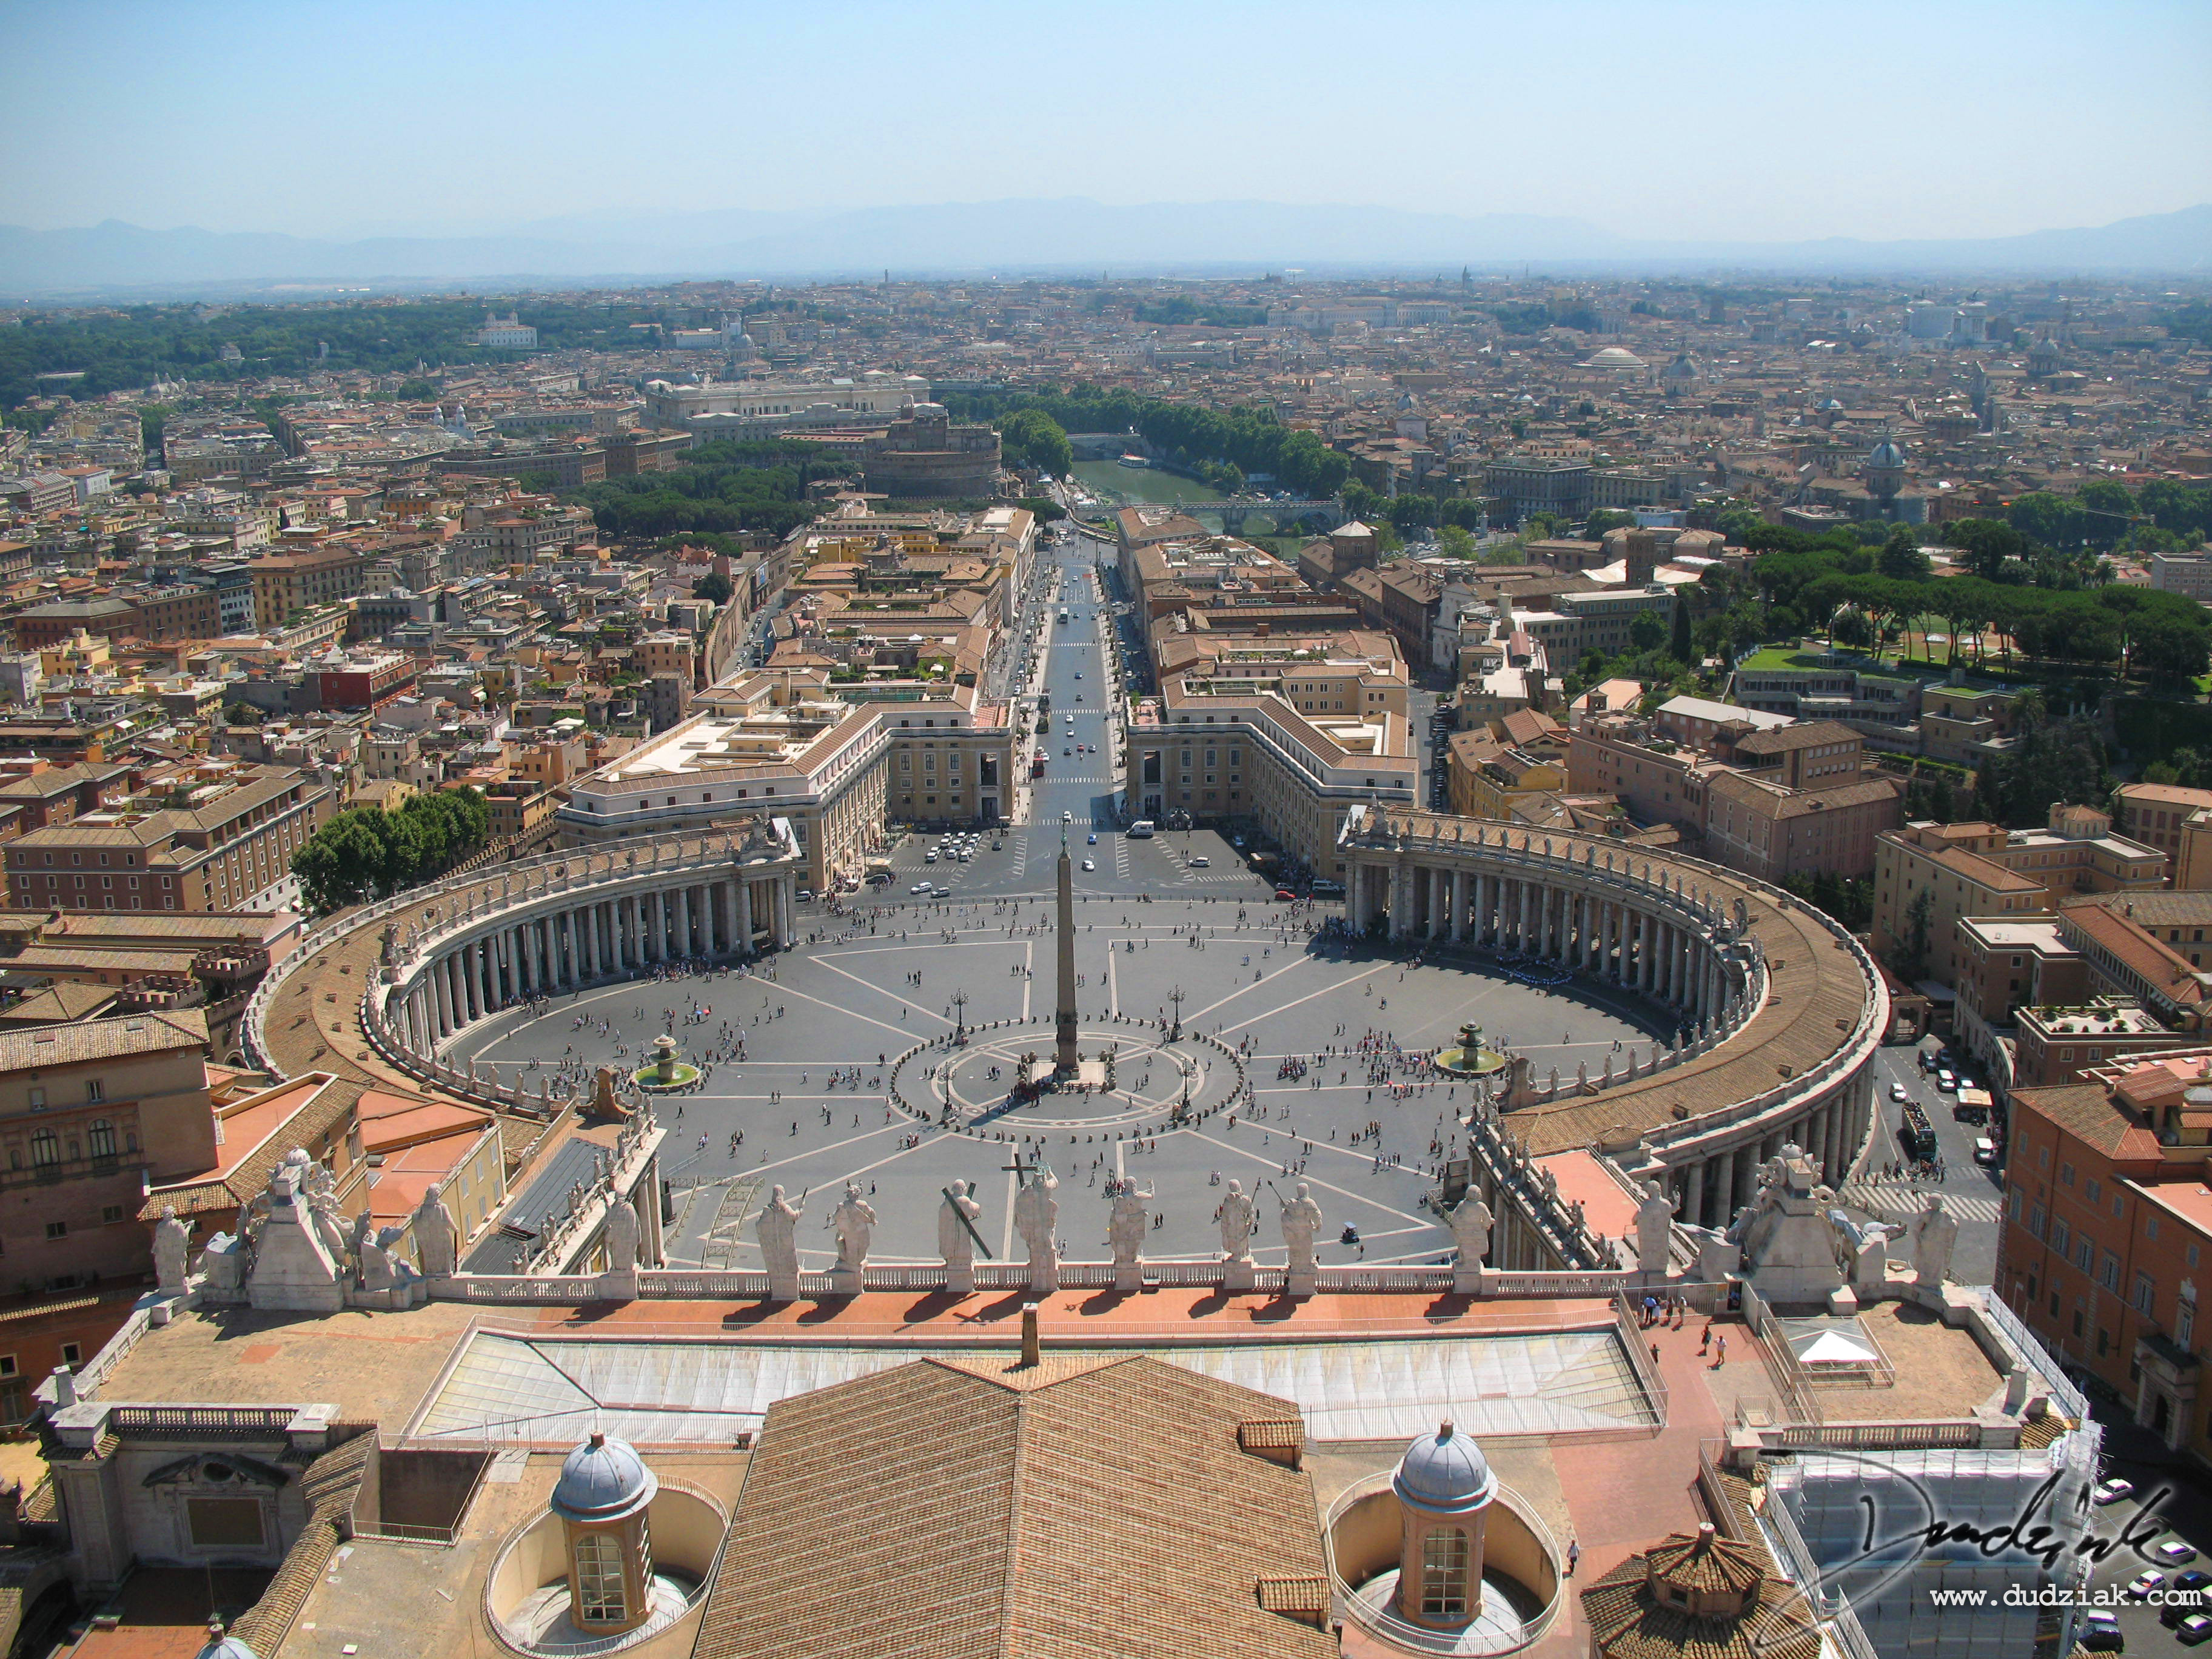 Picture of Saint Peter's Square in the Vatican City from the top of Saint Peter's Basilica.